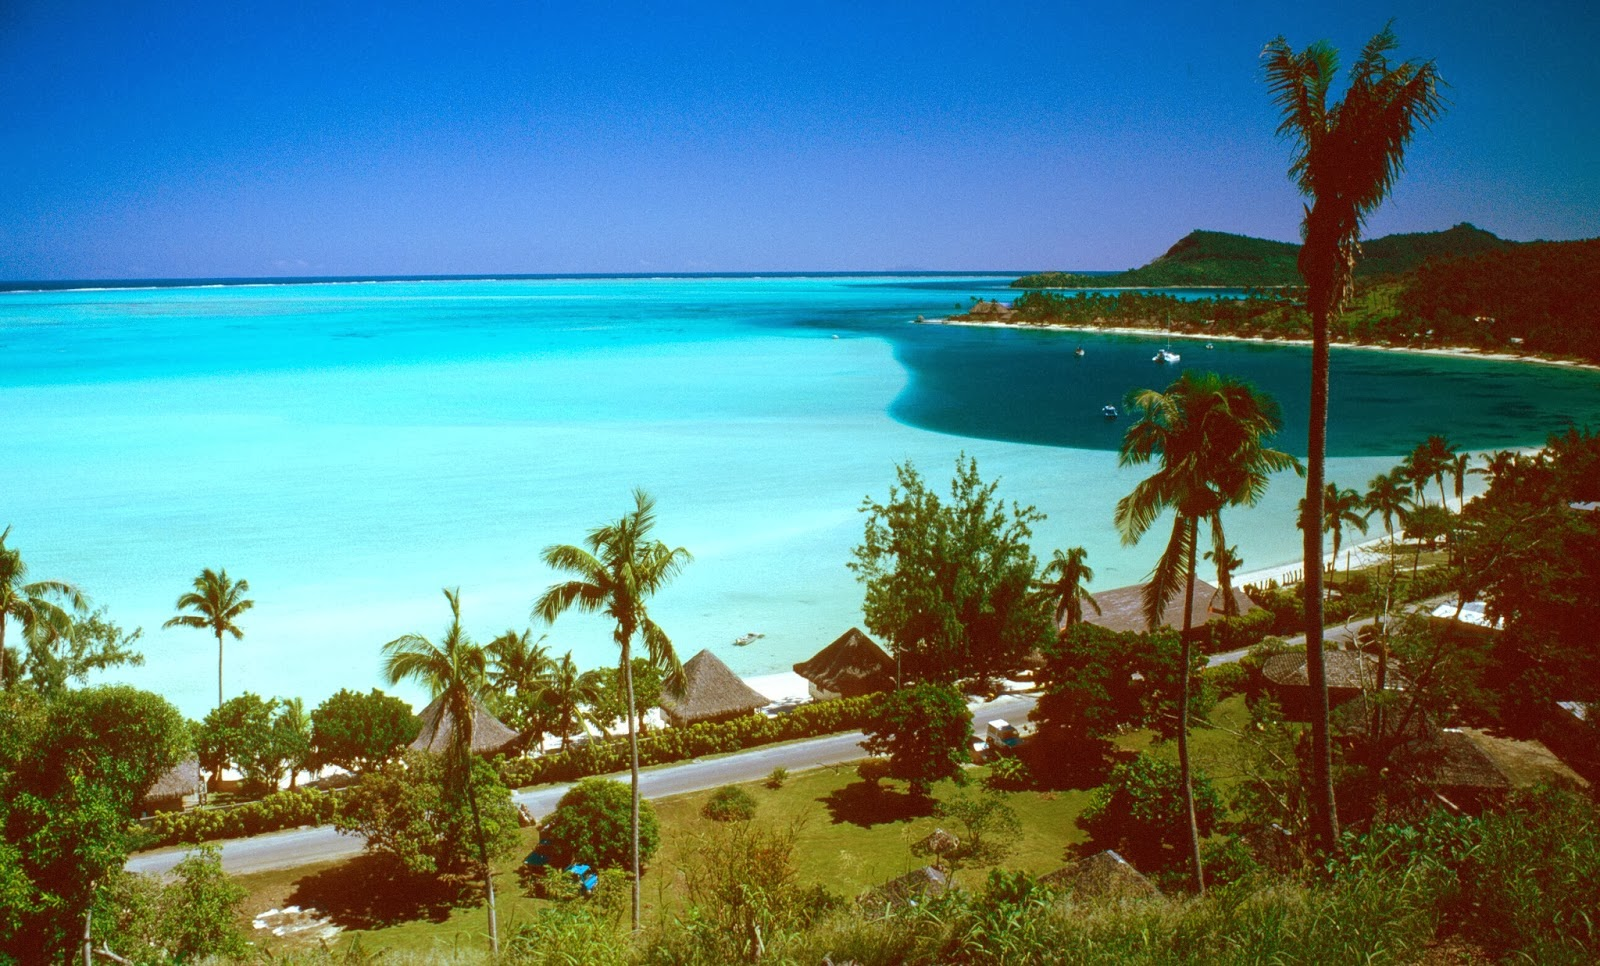 Beautiful Scean Beach Tahiti Beautiful nature Images and wallpapers